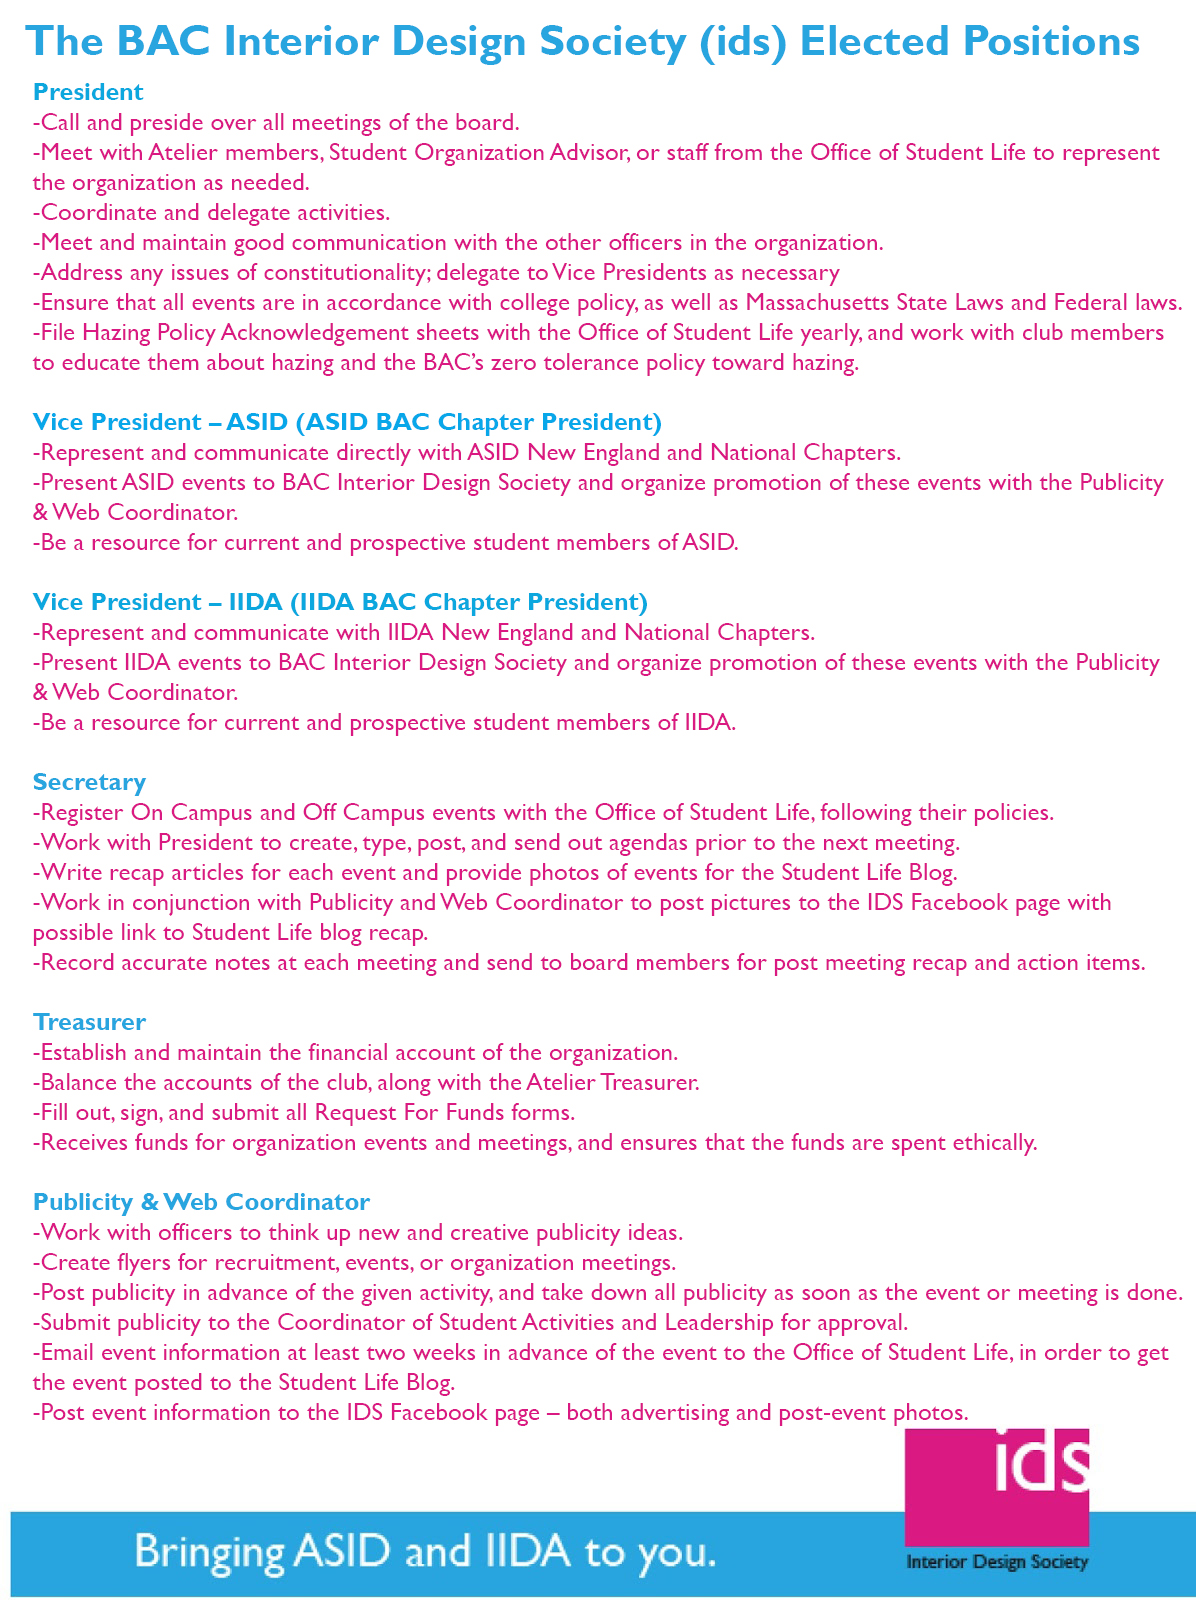 For A Detailed Description Of Each Of These Roles, Click The Above Jpg. For  Information About Eligibility, Click The Jpg Below.